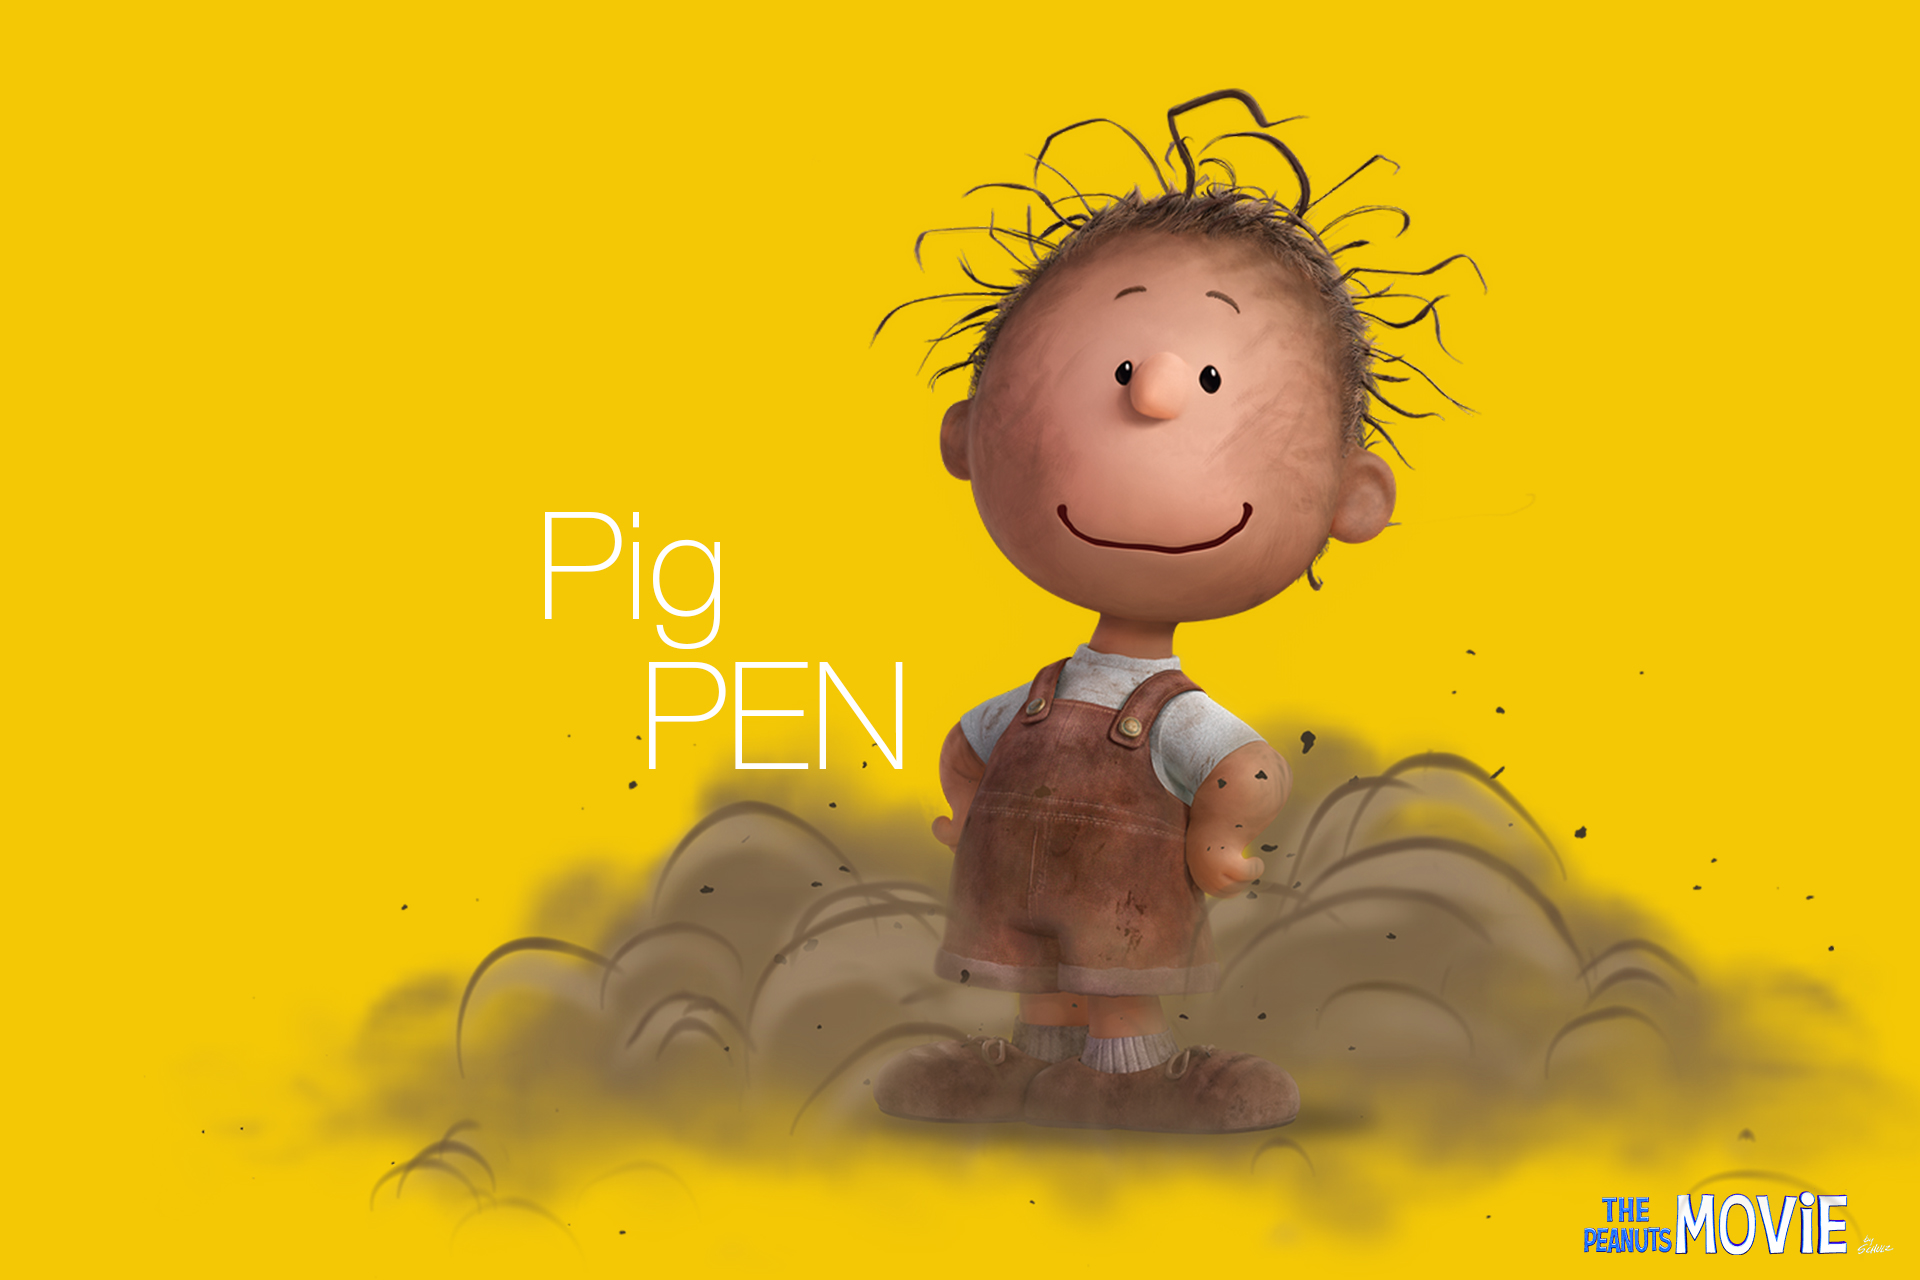 The Peanuts Movie 2015 Hd Wallpapers Page 6 Of 6